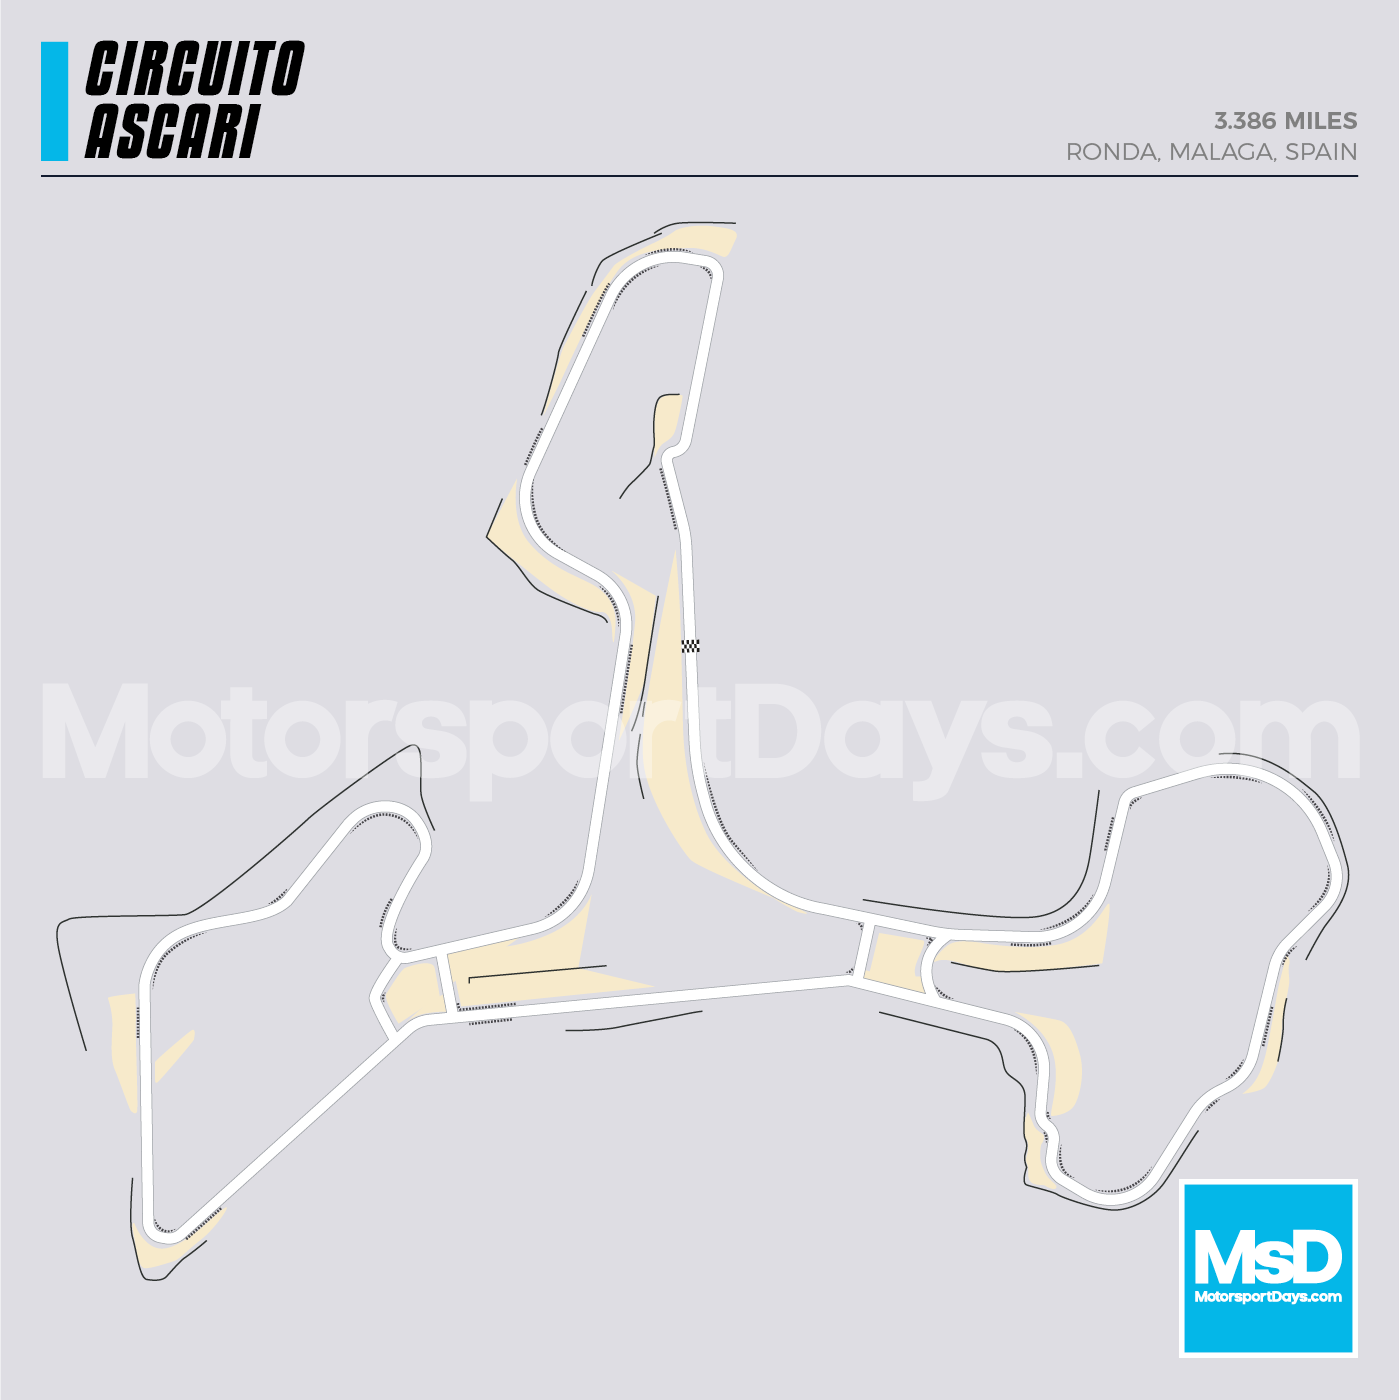 Ascari-Circuit-track-map